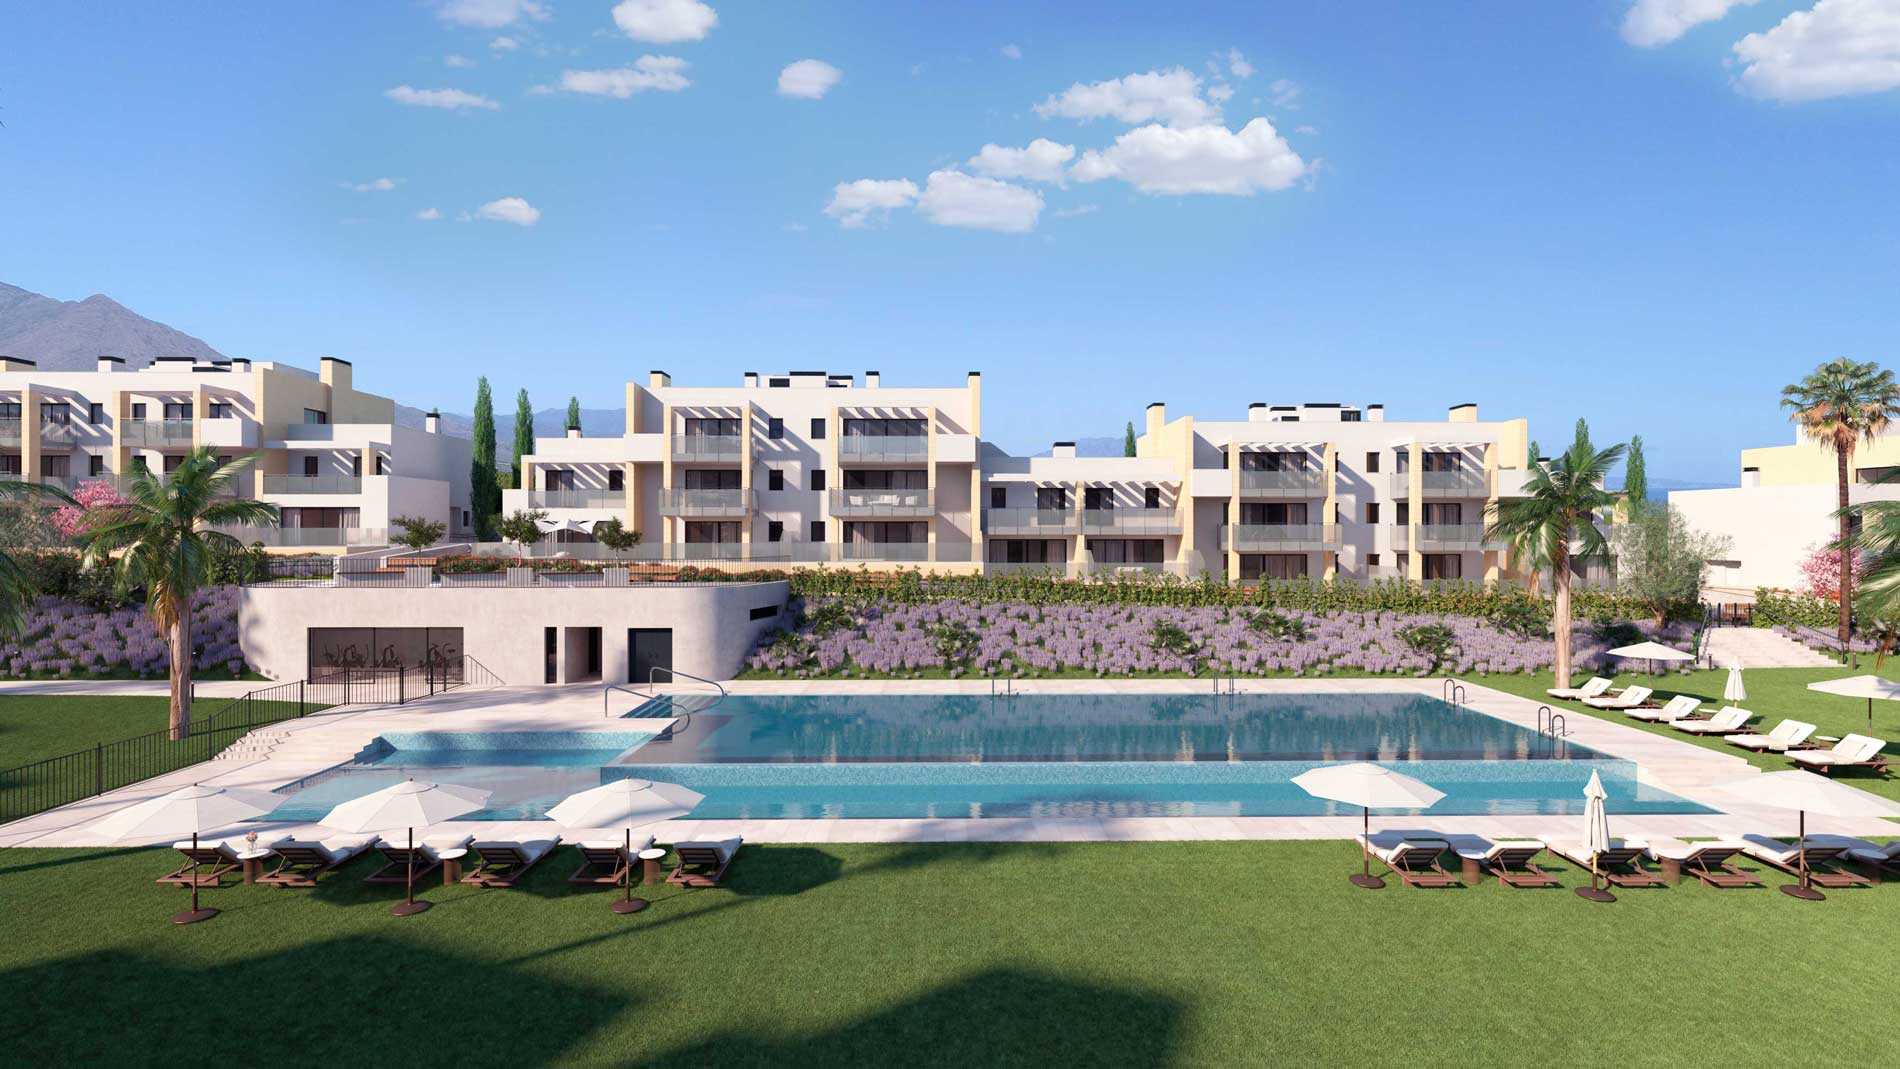 our uxury real estate agents in the best city of costa del sol